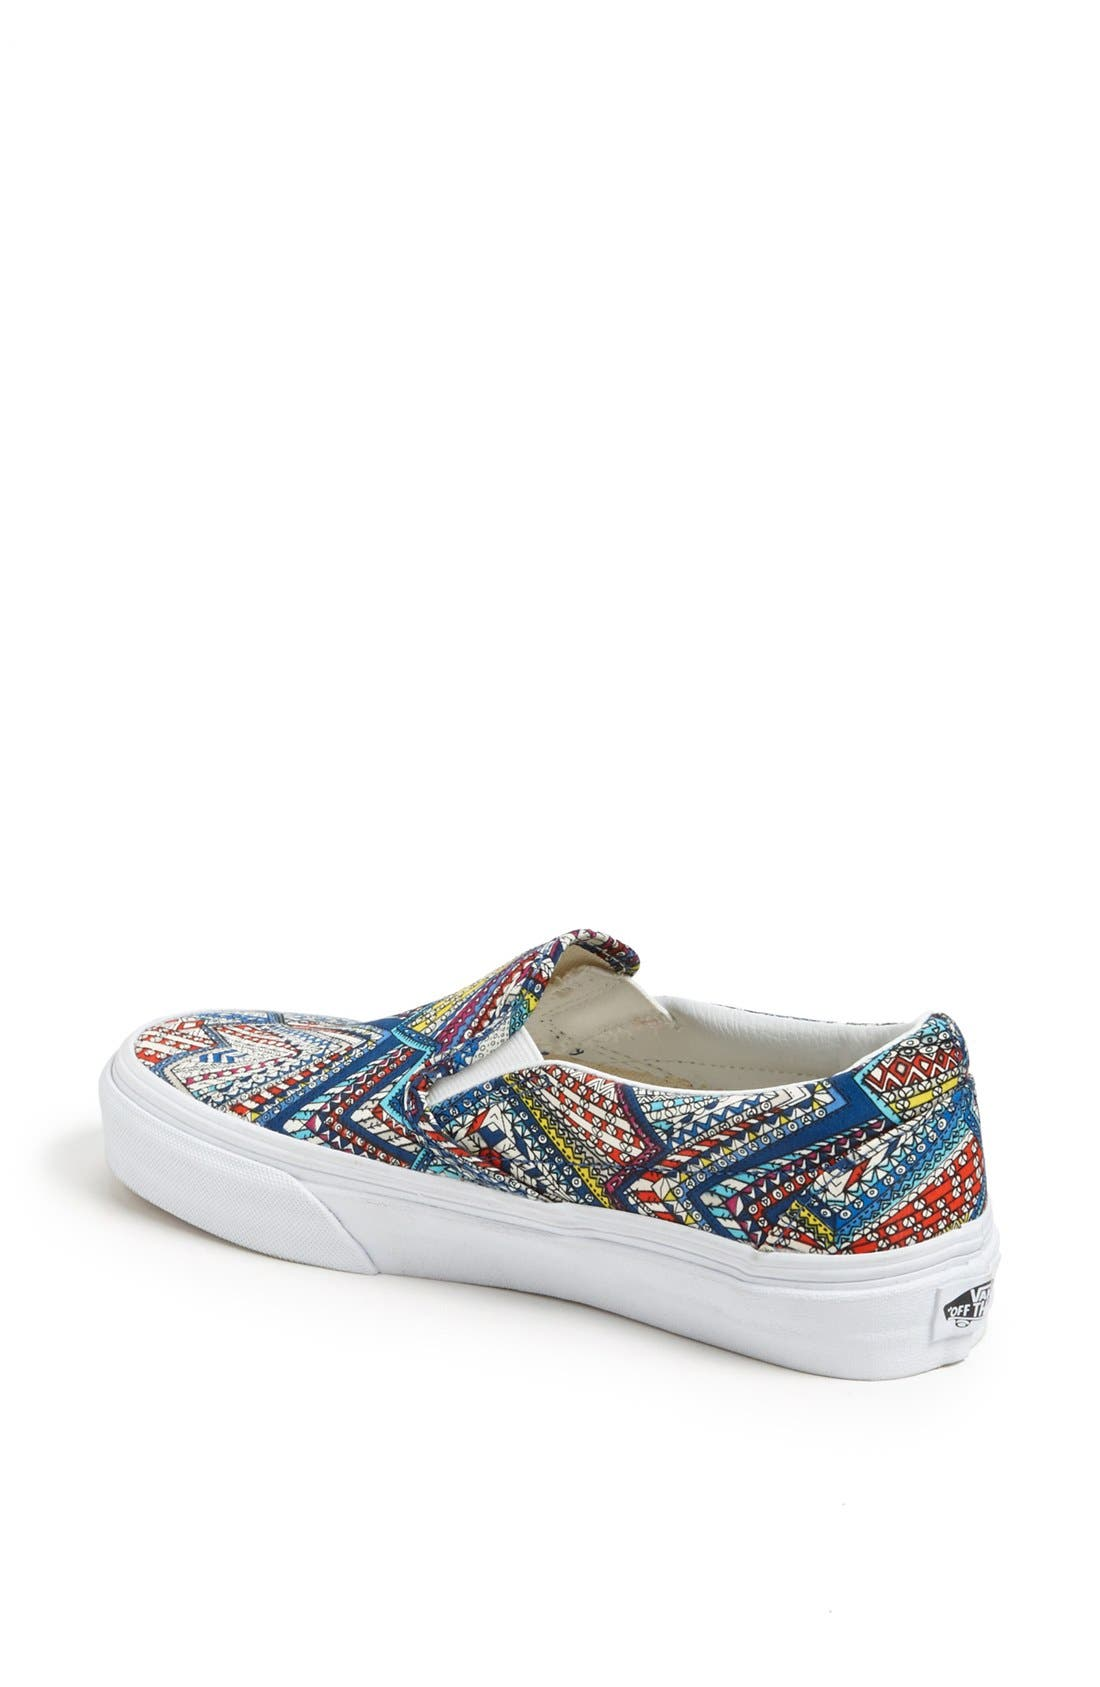 Alternate Image 2  - Vans 'Classic - Abstract' Sneaker (Women)